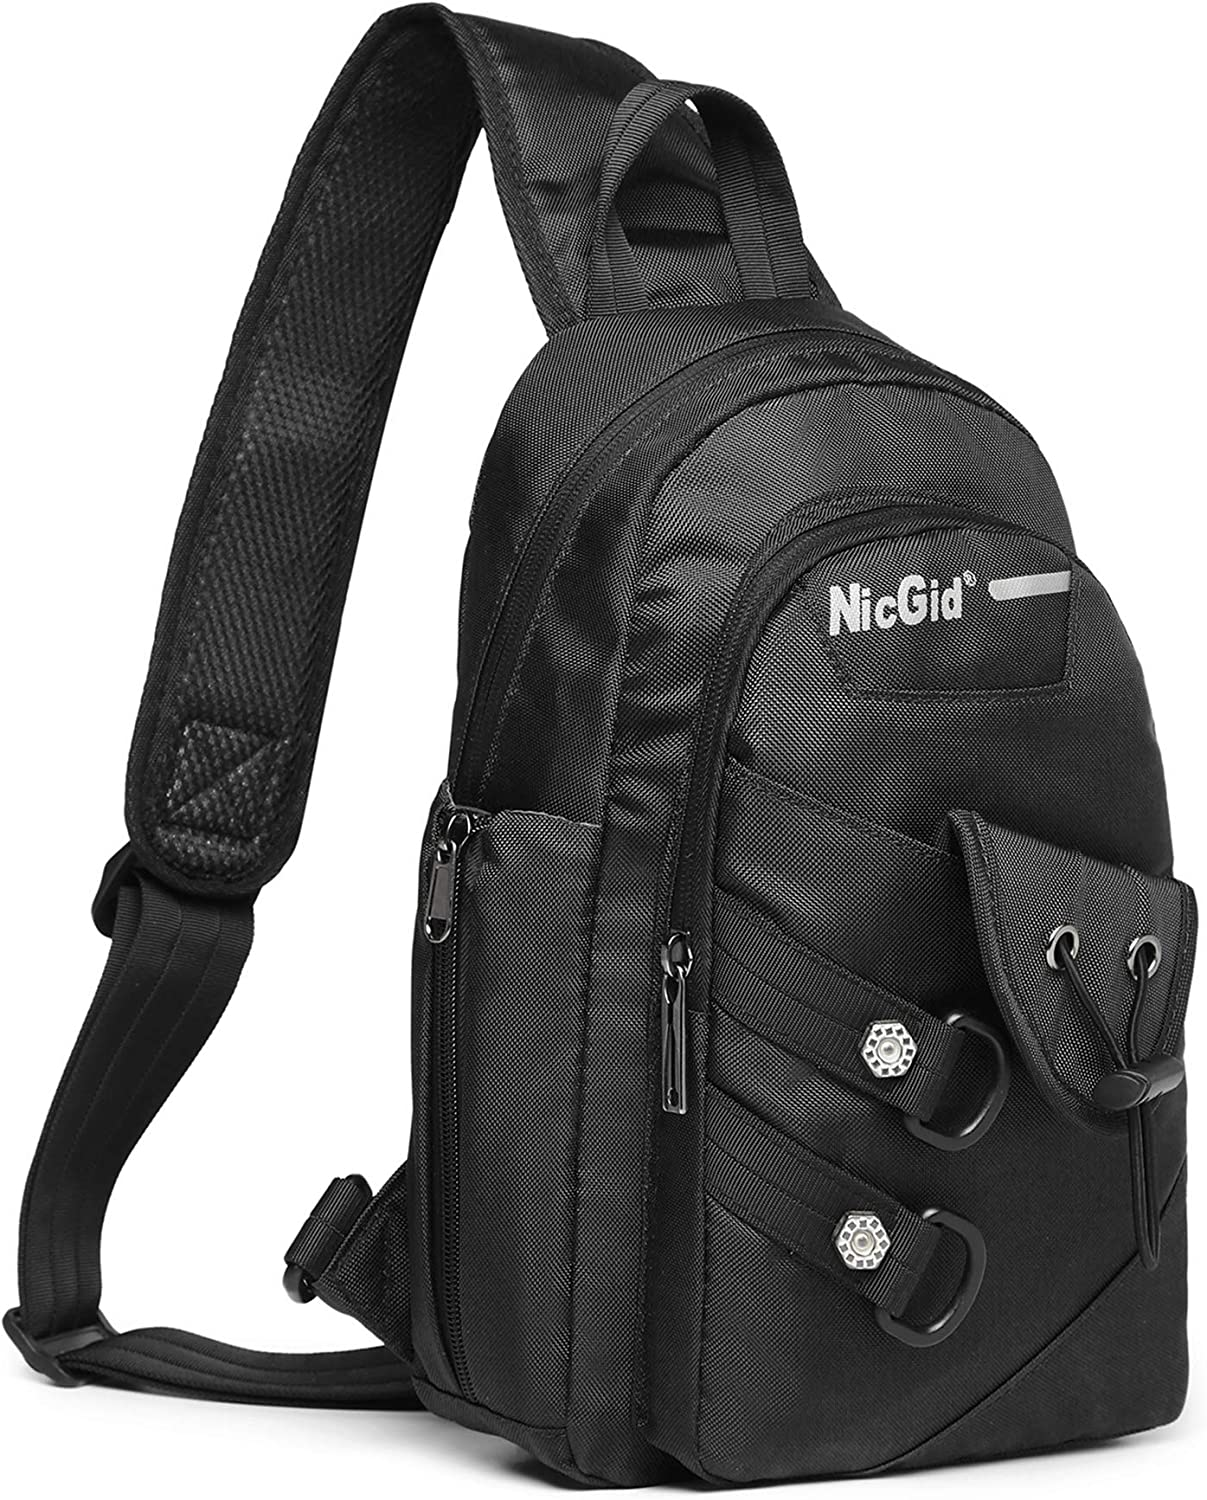 Nicgid Sling Bag Chest Shoulder Backpack Crossbody Bags for iPad Tablet Outdoor Hiking Men Women